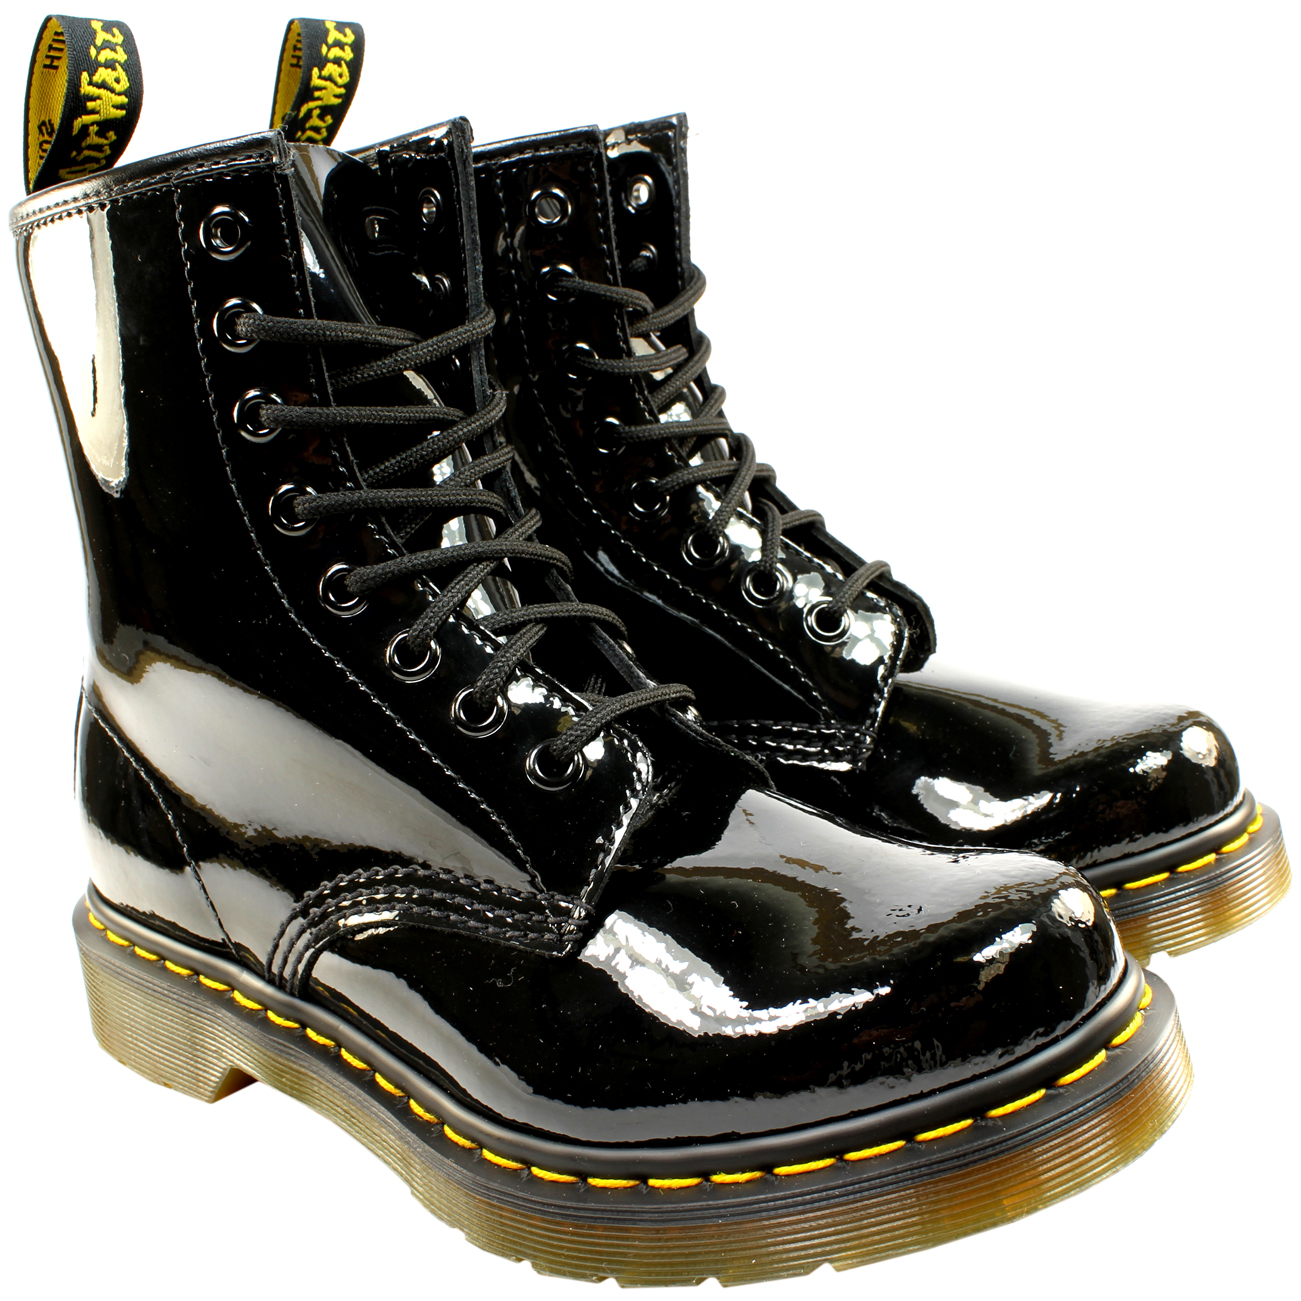 7d8ee2d17e4 Womens Dr Martens 1460 W 8 Eyelet Patent Lamper Army Combat Lace Up ...